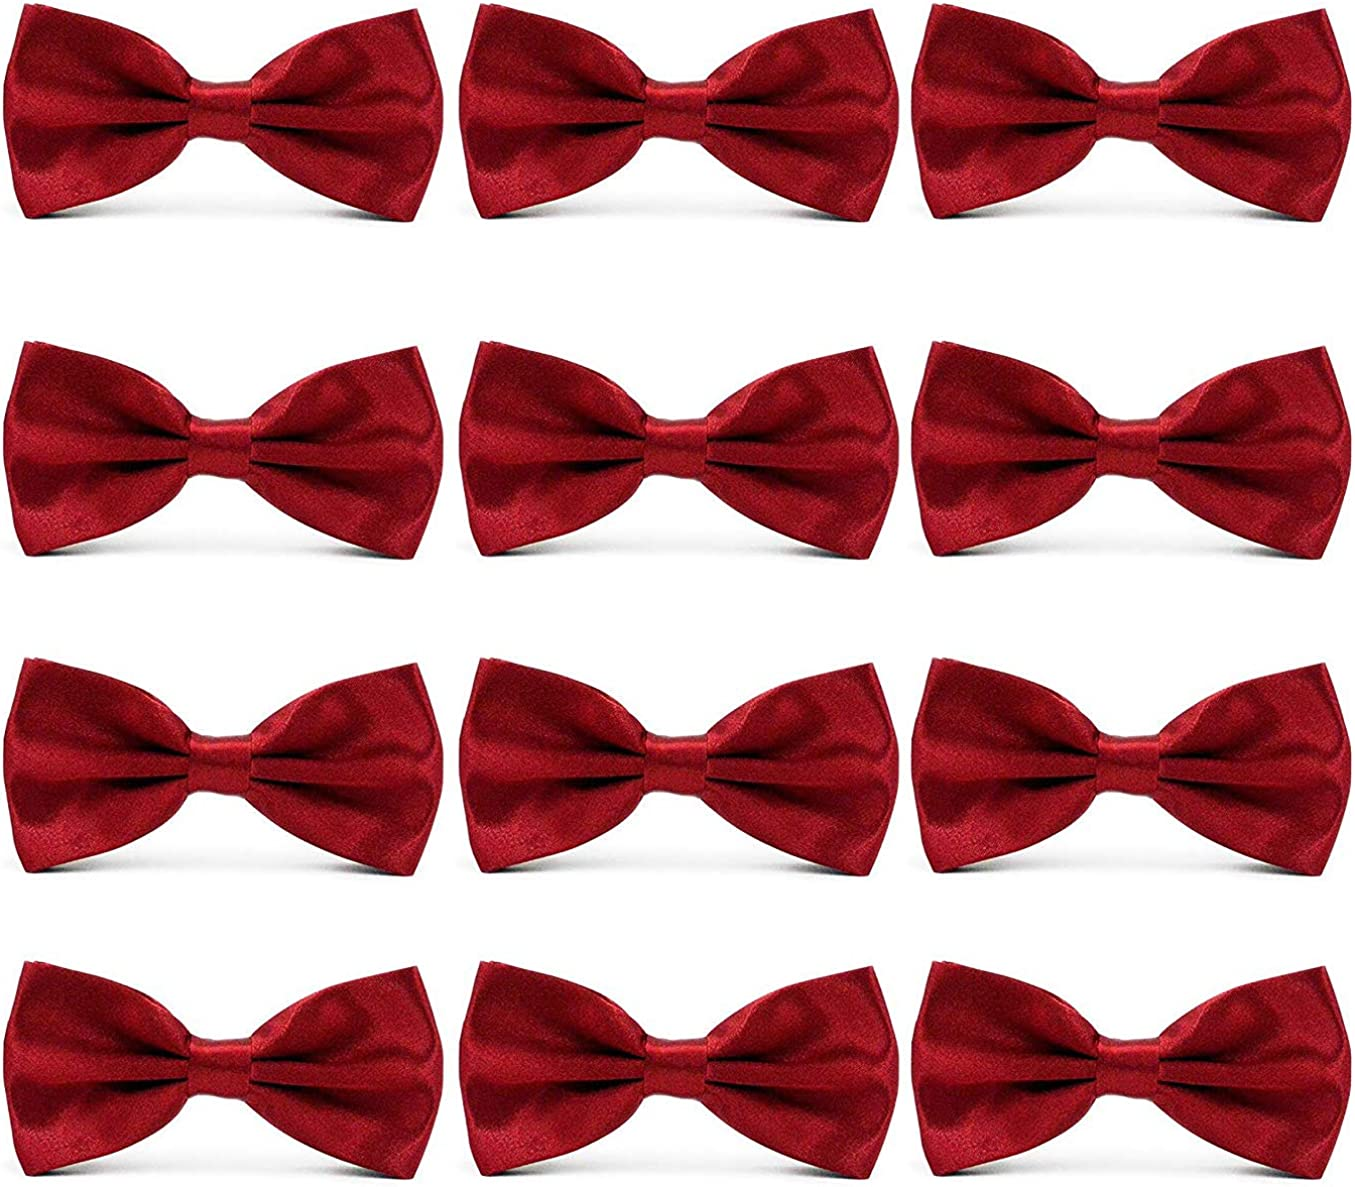 AVANTMEN Men's Bowties Formal Satin Solid - 12 Pack Bow Ties Pre-tied Adjustable Ties for Men Many Colors Option in bulk